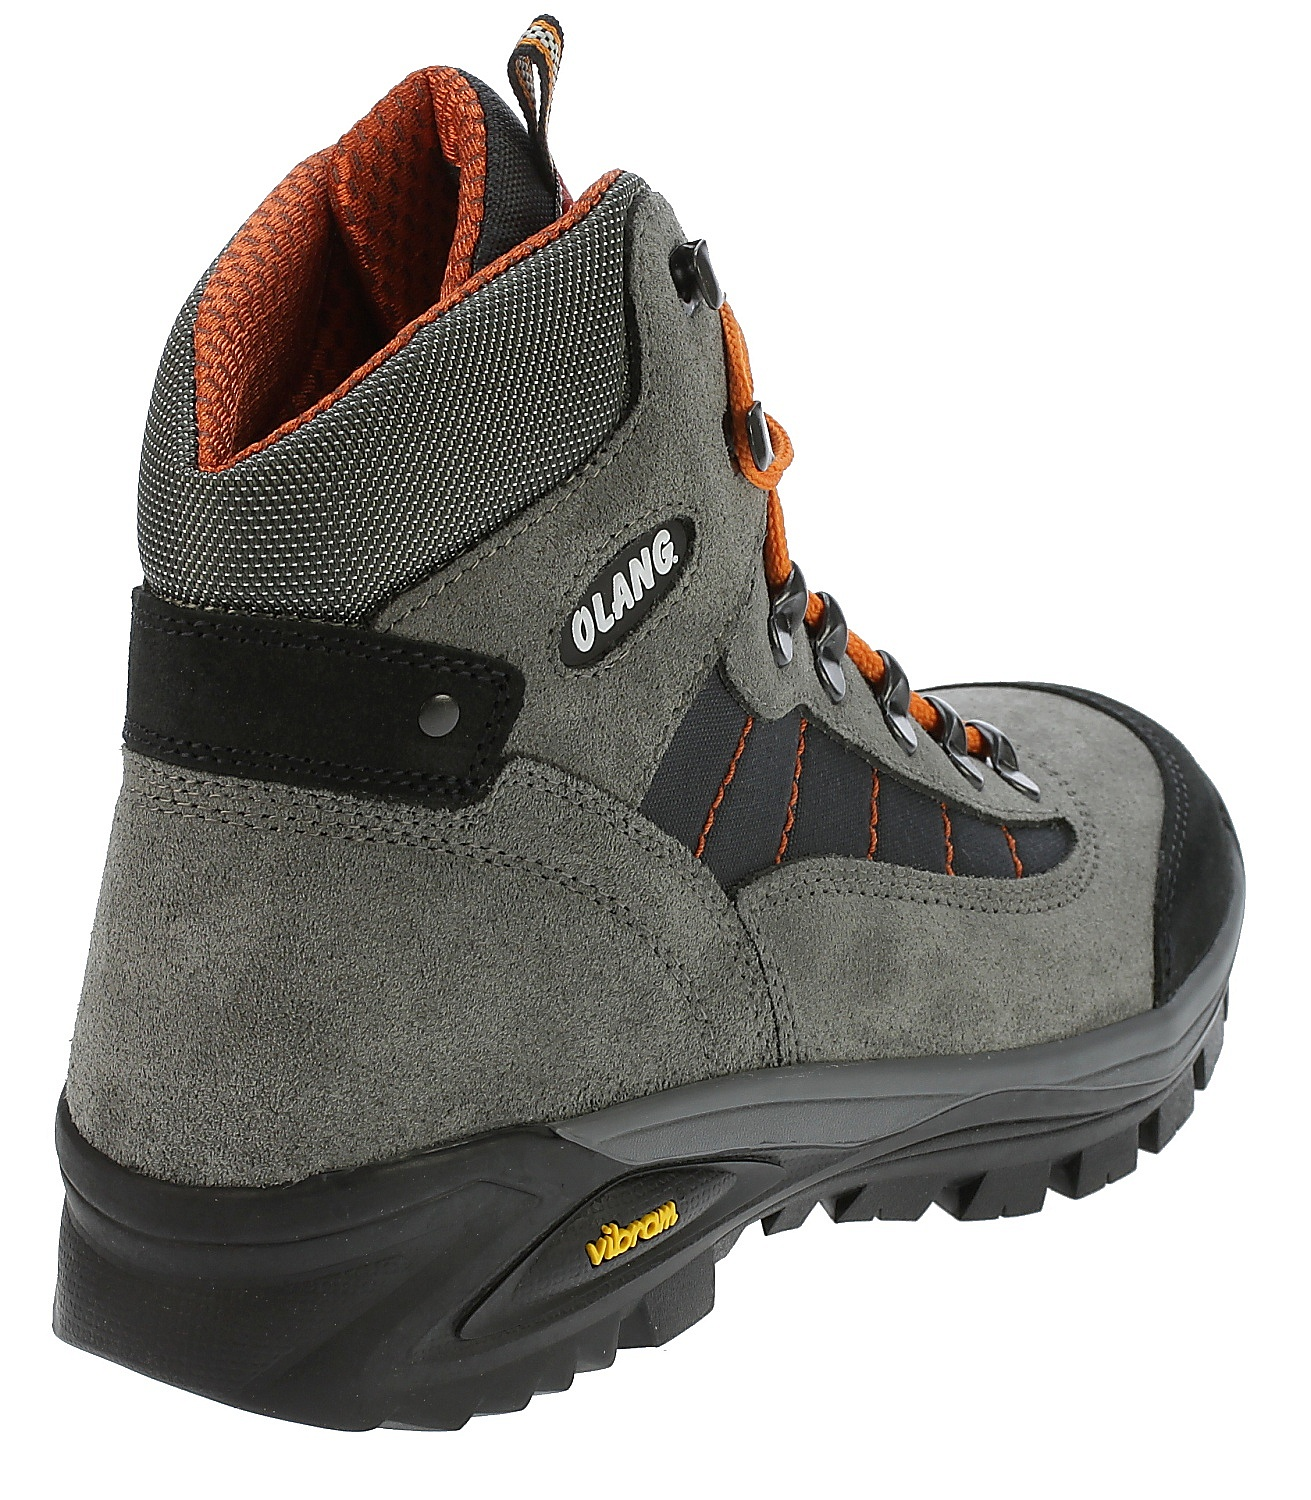 shoes Olang Tarvisio Tex - 831 Asfalto - Snowboard shop d3f7612494d